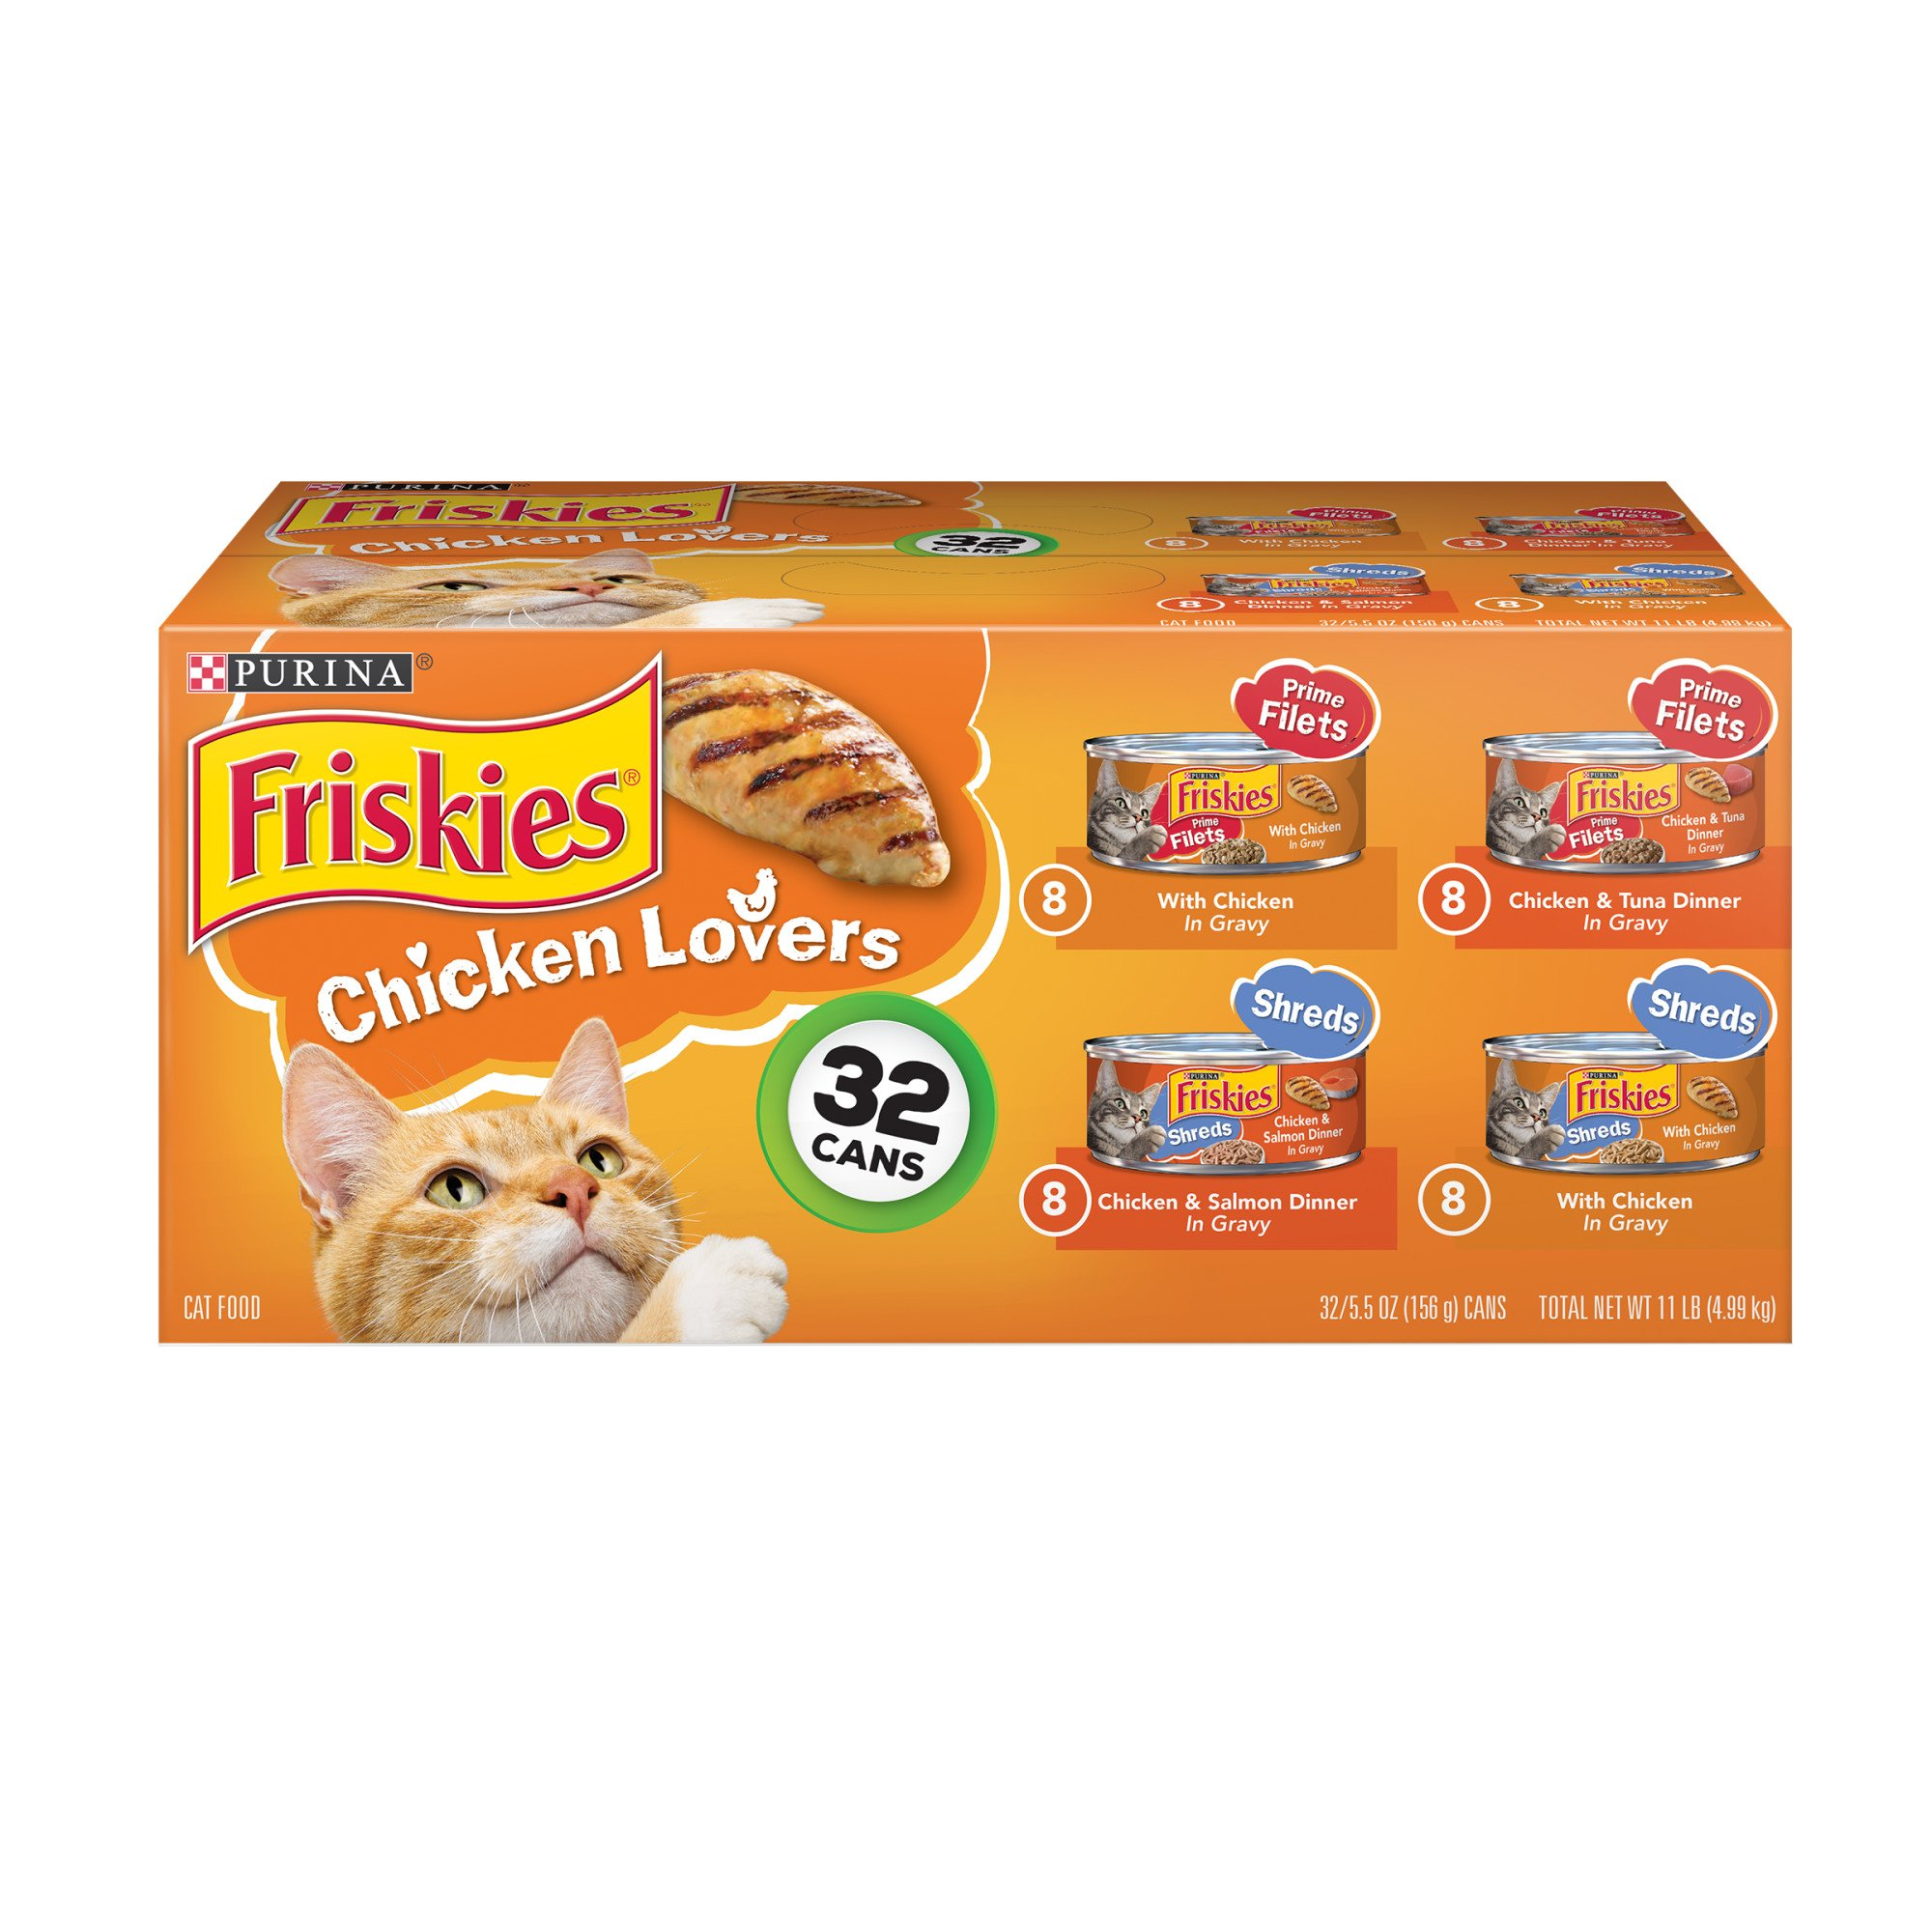 Purina Friskies Chicken Lovers Prime Filets & Shreds Gravy Adult Wet Cat Food Variety Pack, 5.5 oz., Count of 32